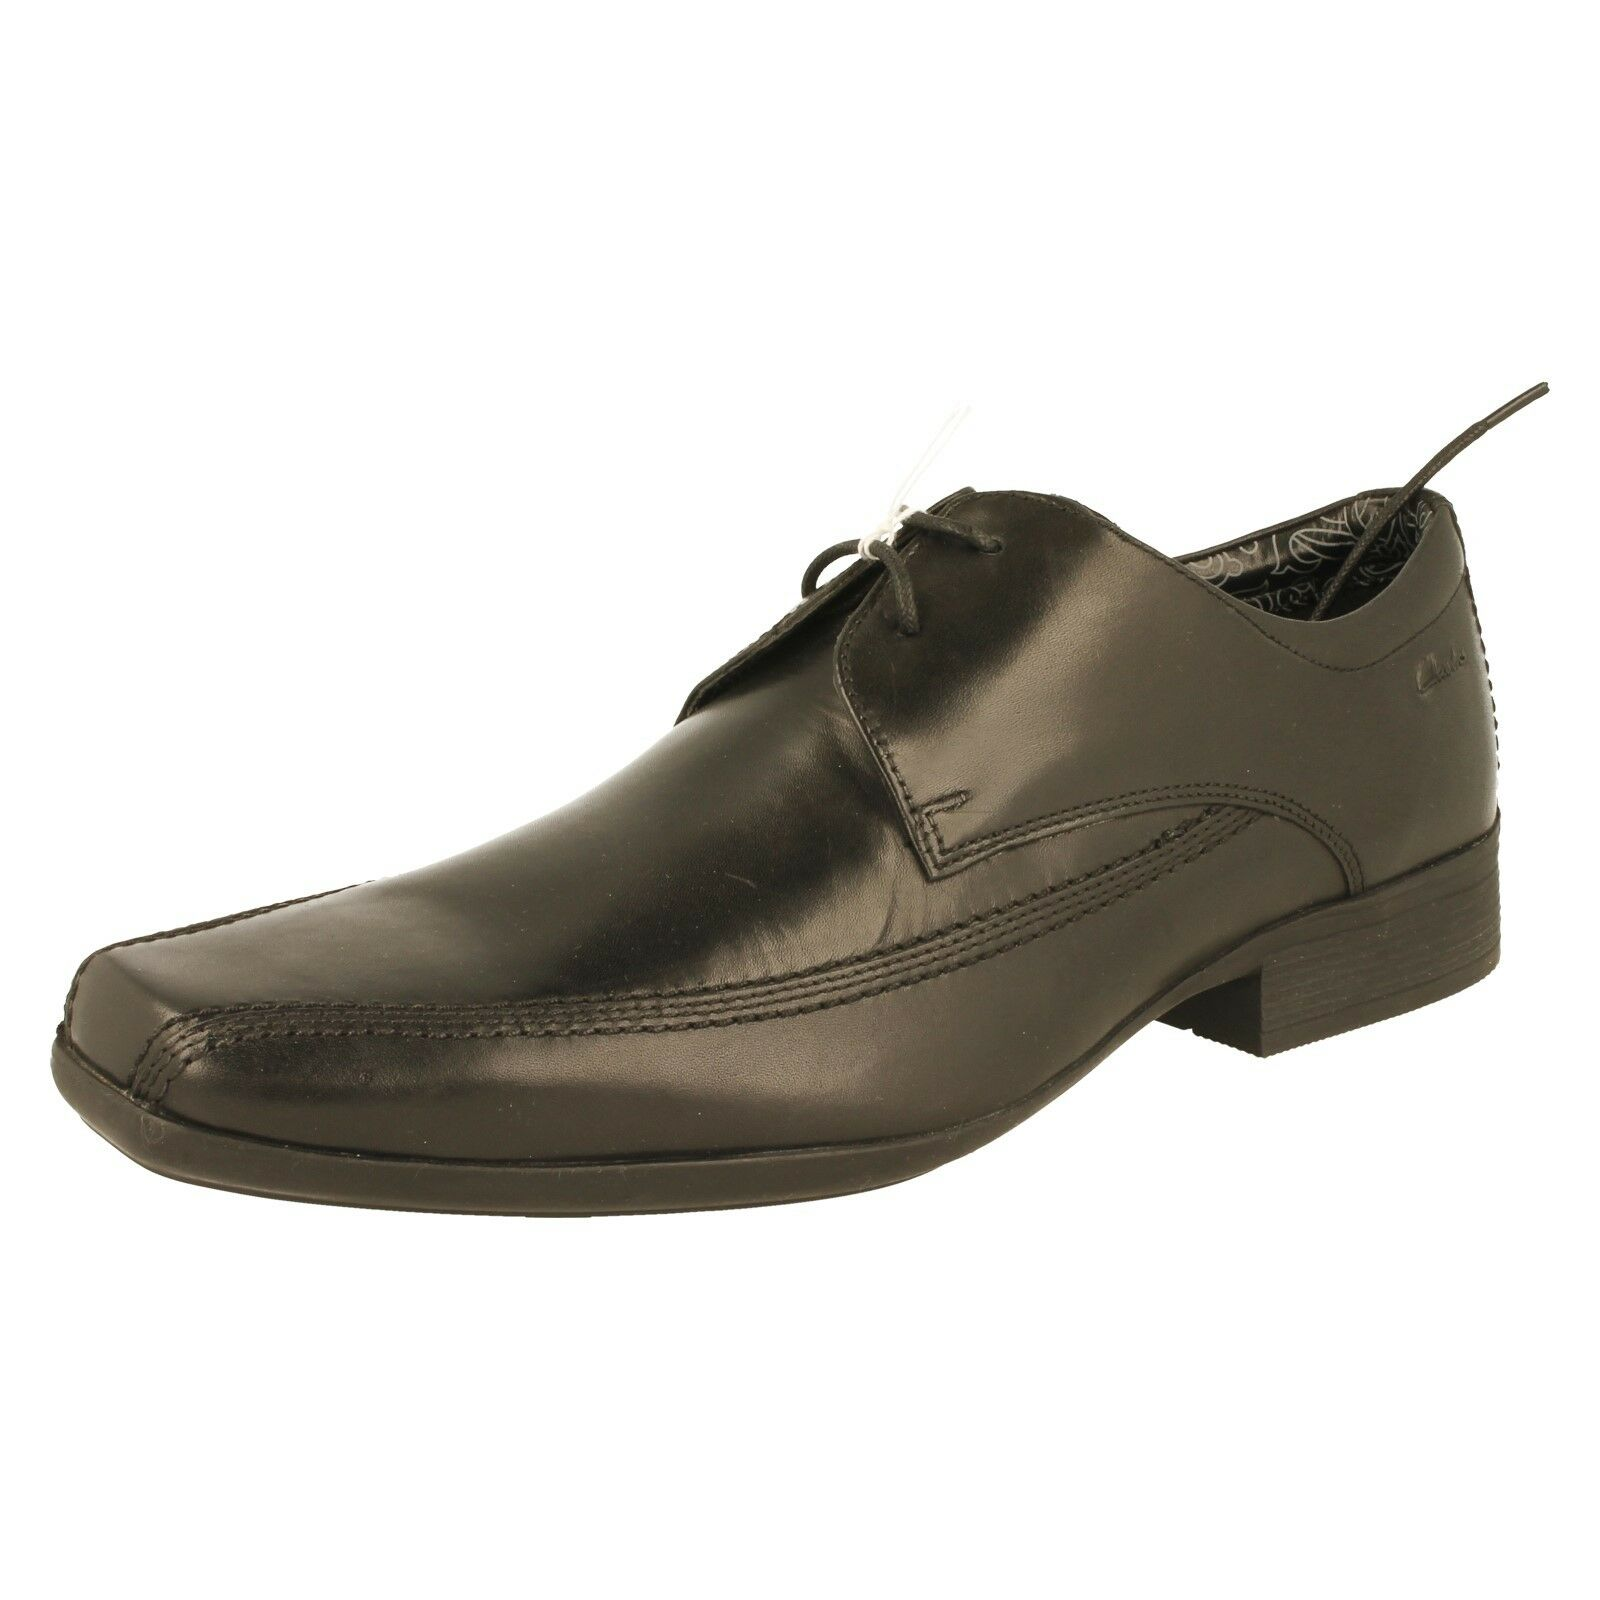 Men's/Women's Mens Clarks Shoes - Baze is Day Every item described is Baze available Impeccable Comfortable and natural 3f0058